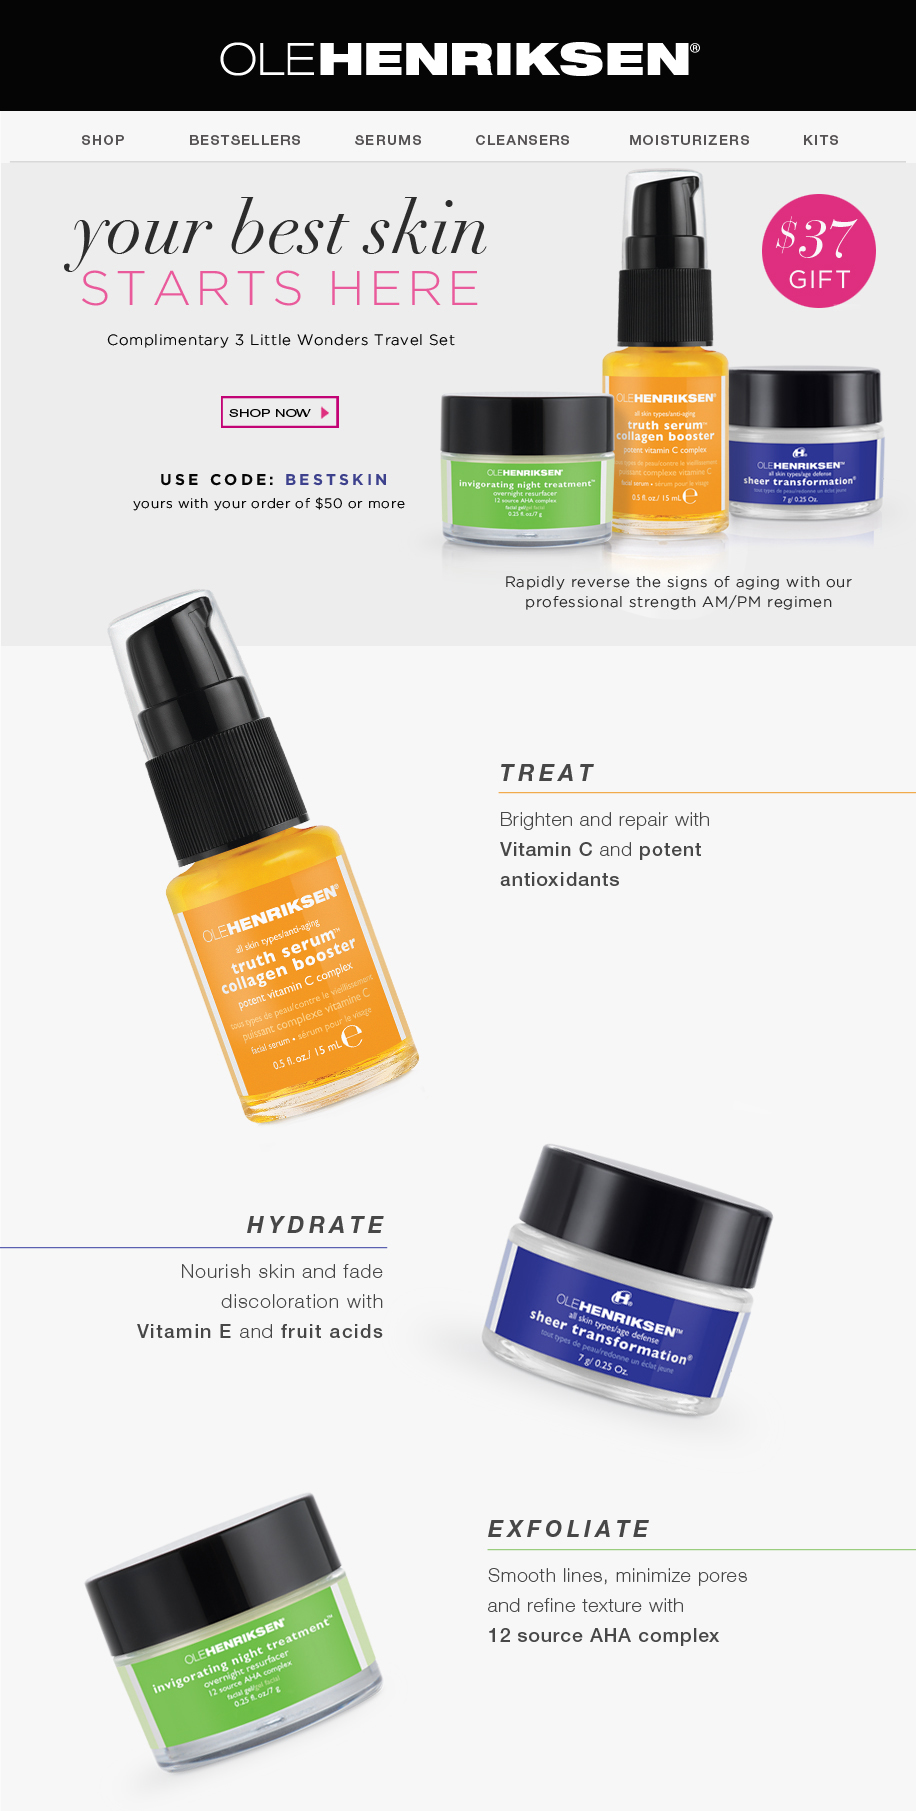 complimentary set offer